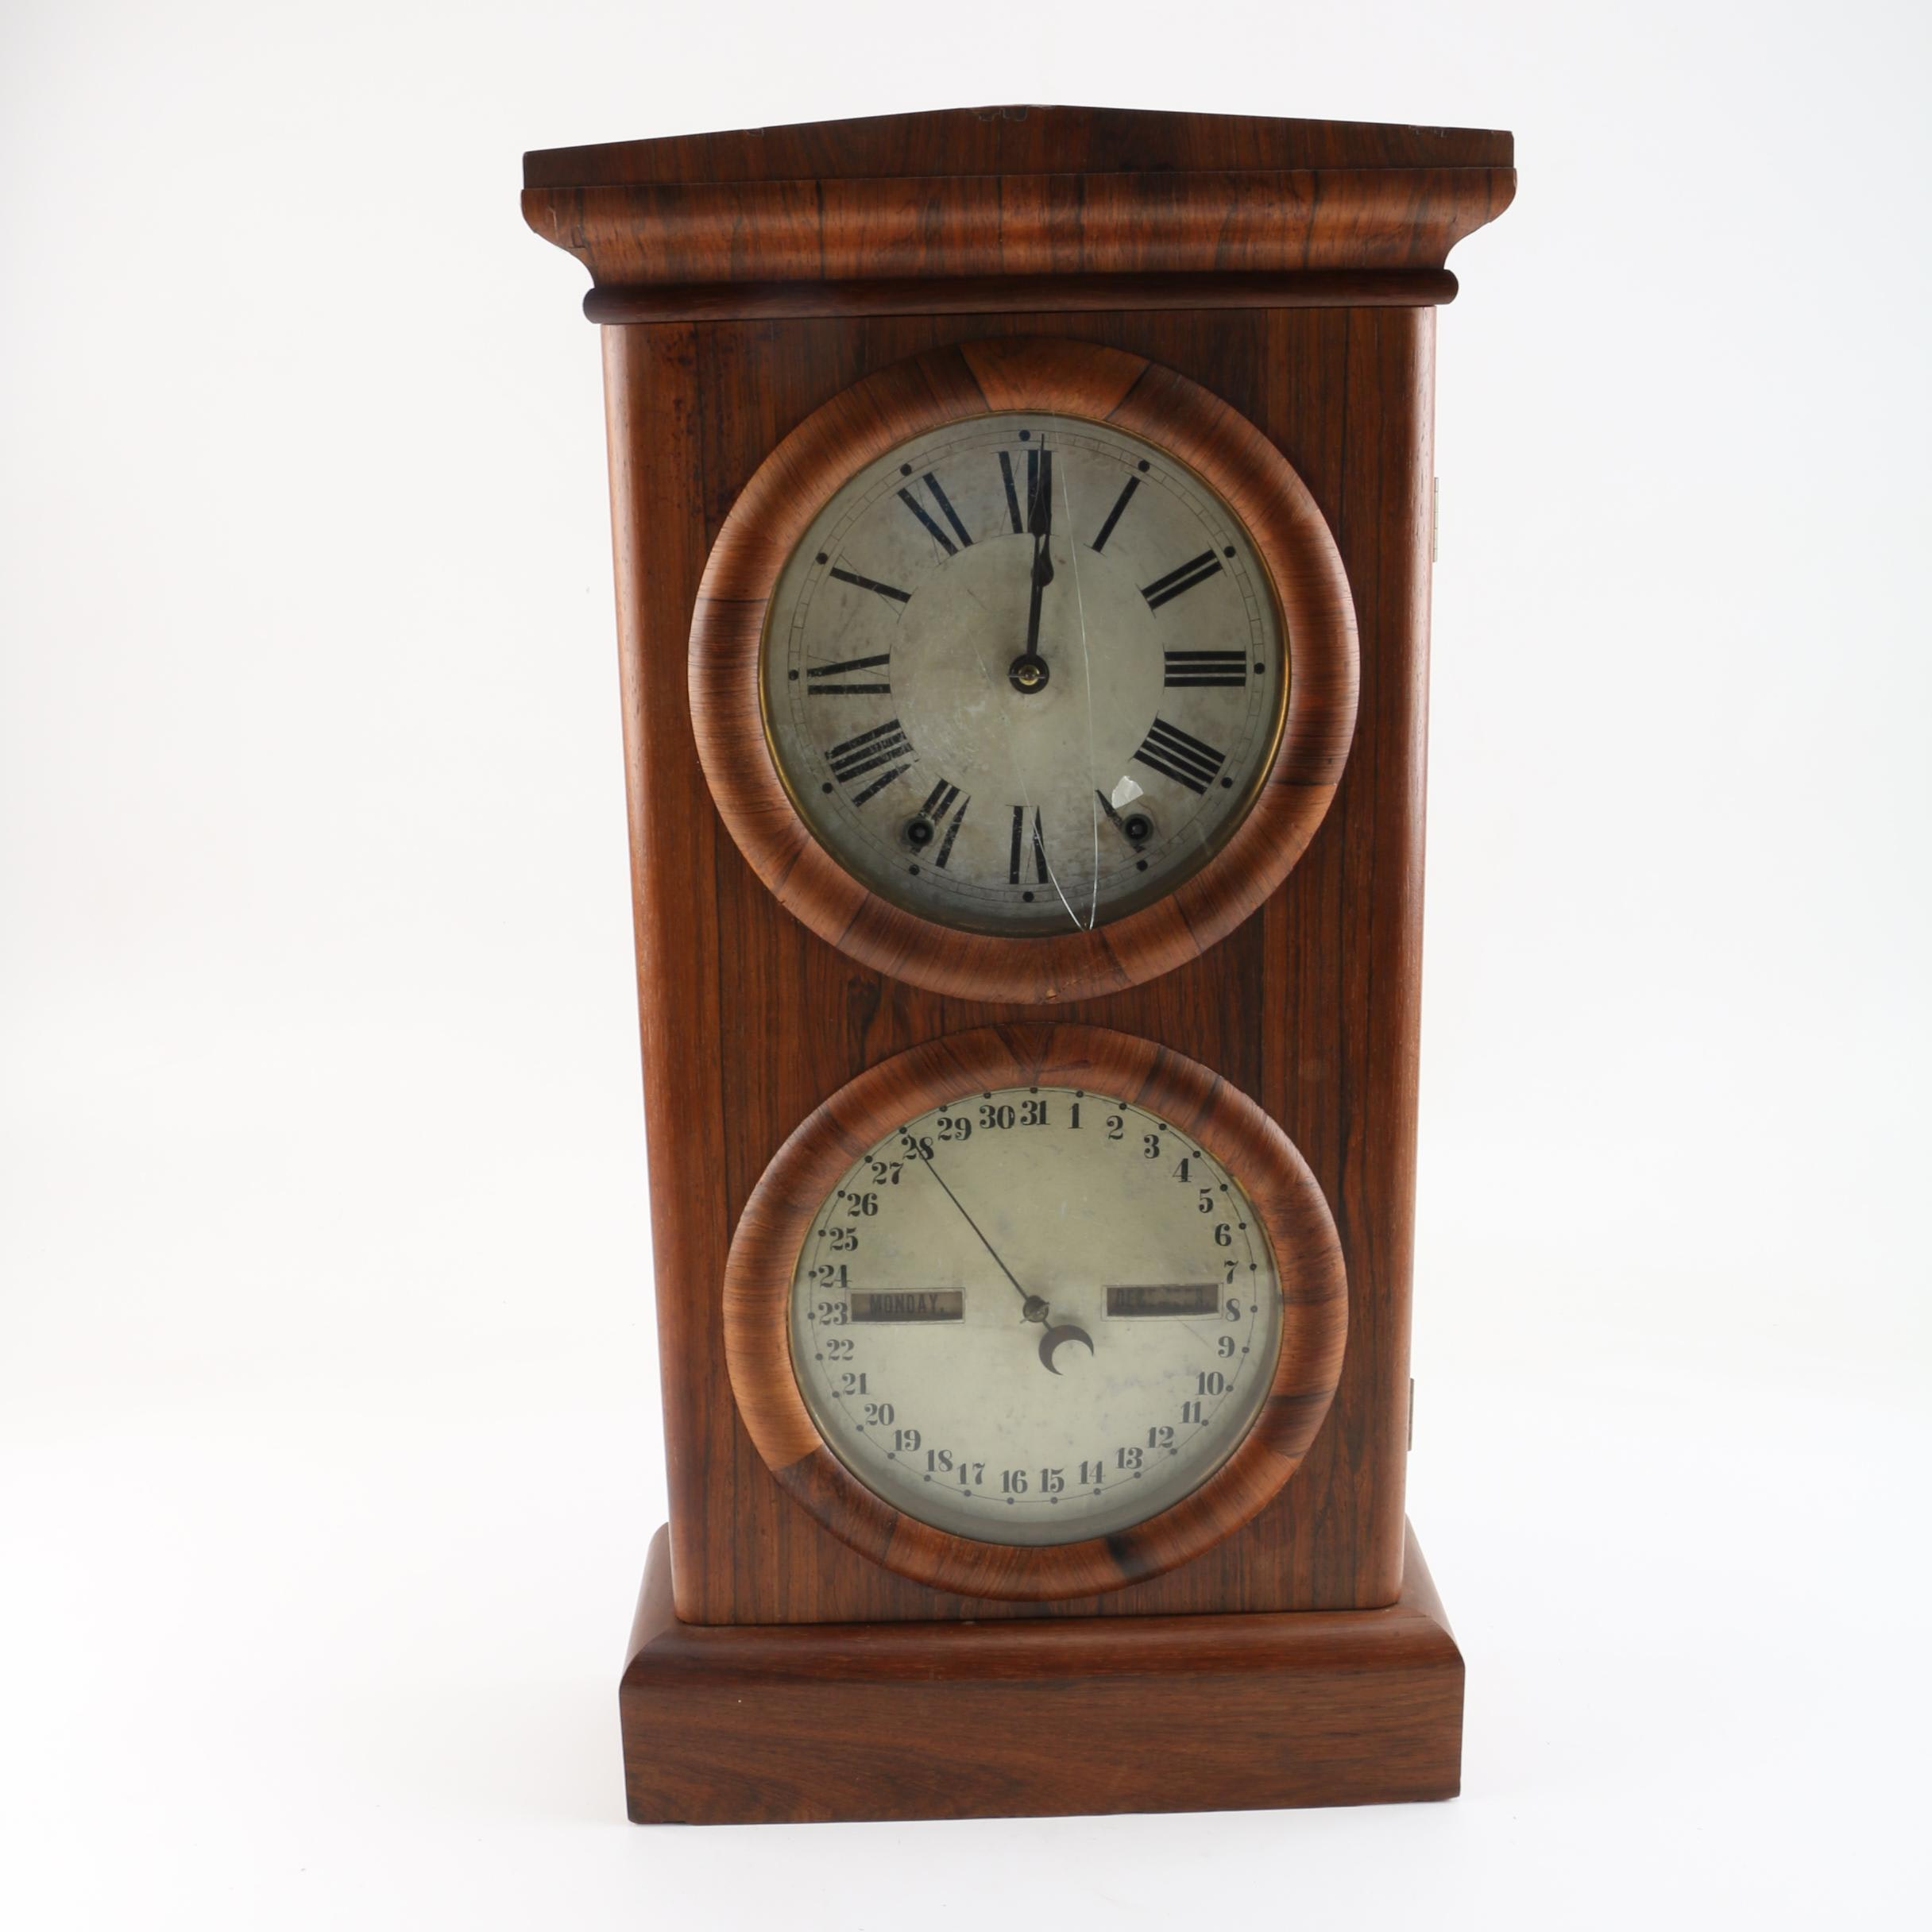 19th Century Seth Thomas Rosewood and Walnut Wall Clock and Calendar